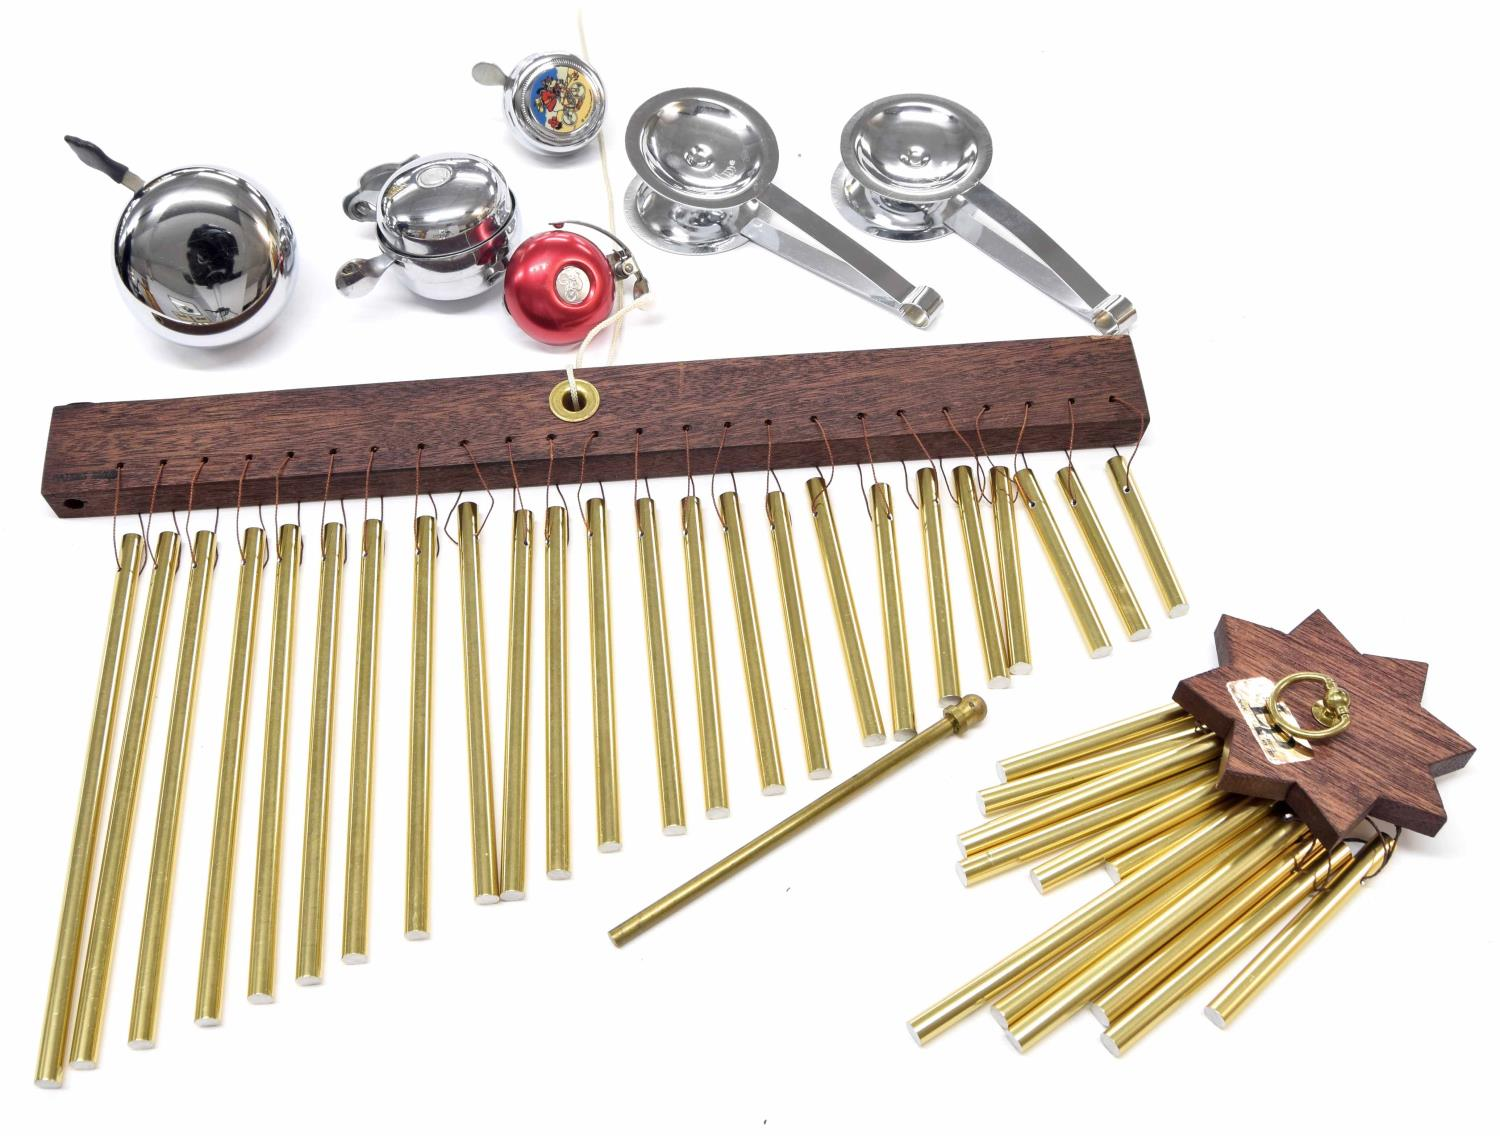 Paul Chalklin - Latin Percussion brass chime bar; together with a Latin Percussion cluster chime,